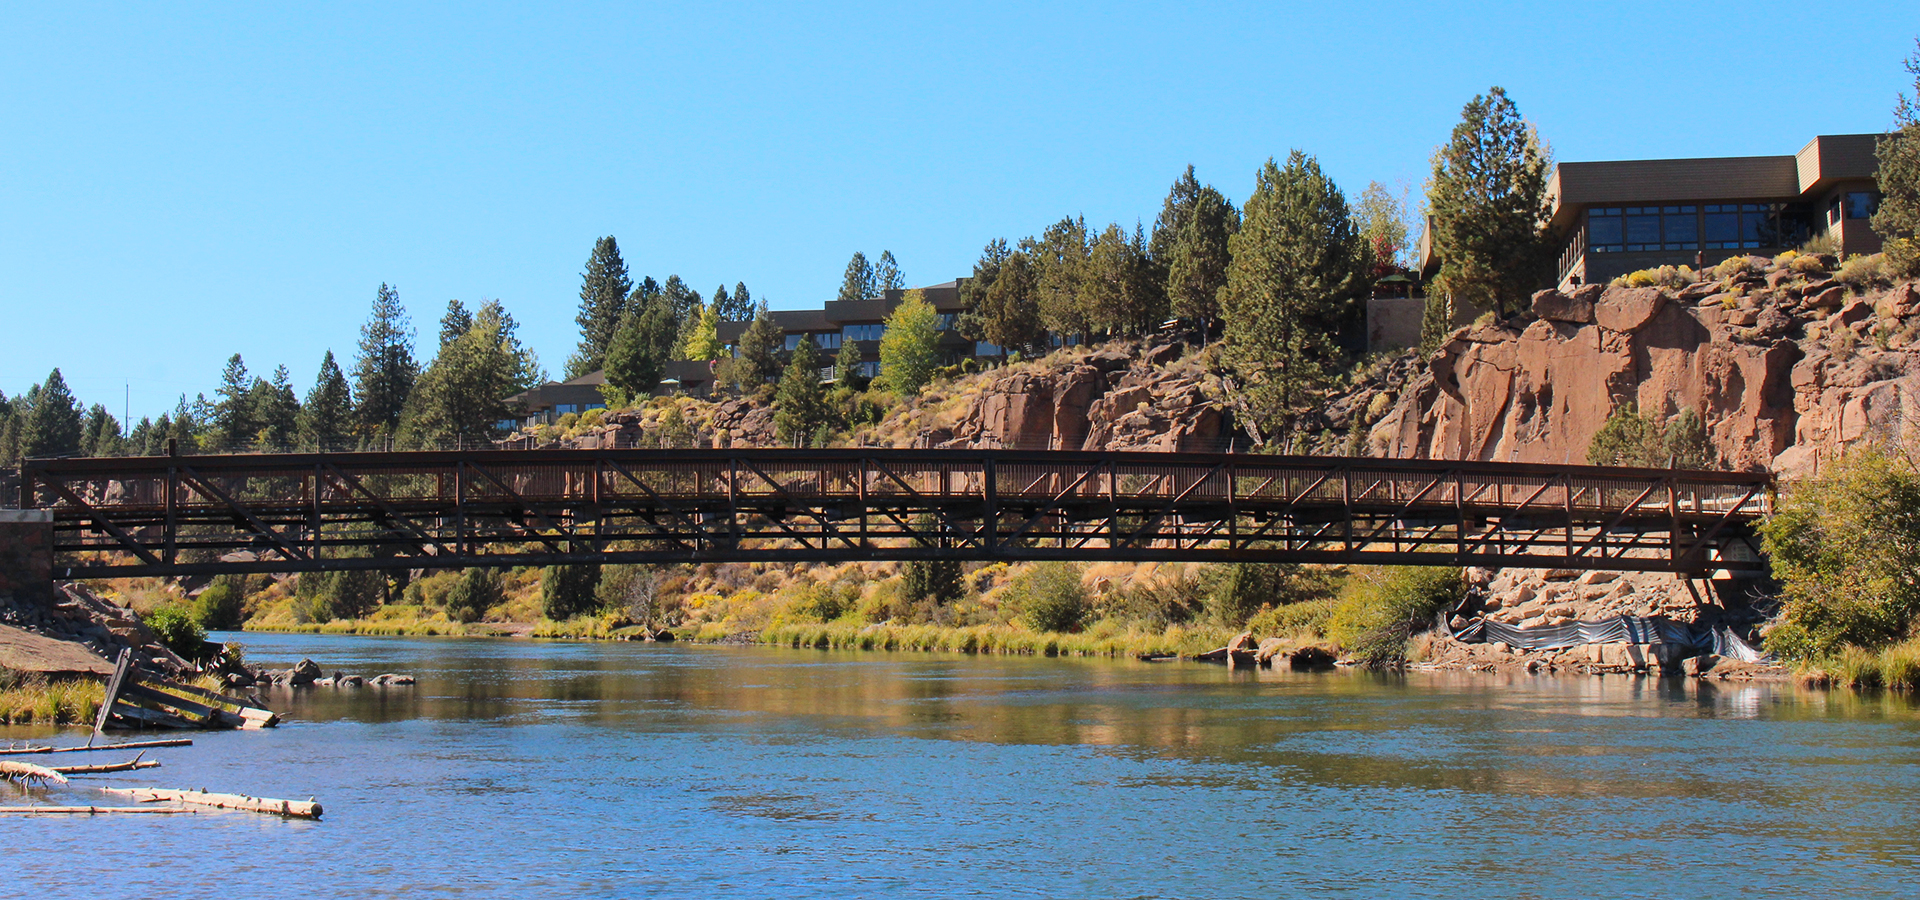 Image of the Farewell Bend Bridge over the Deschutes River.